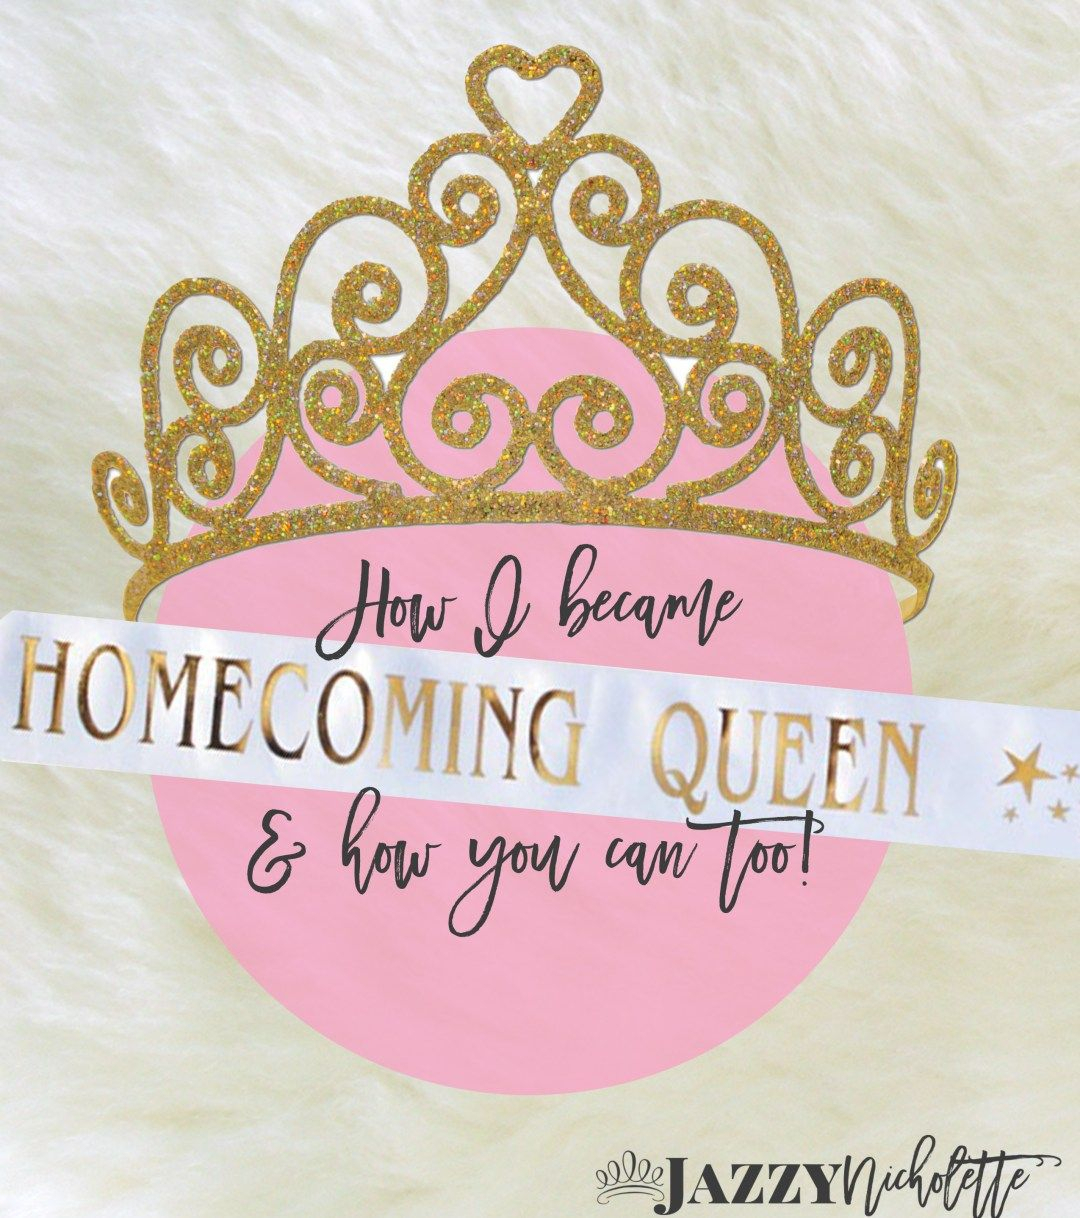 10 Nice Campaign Ideas For Homecoming Queen high school homecoming queen campaign ideas prom high school 1